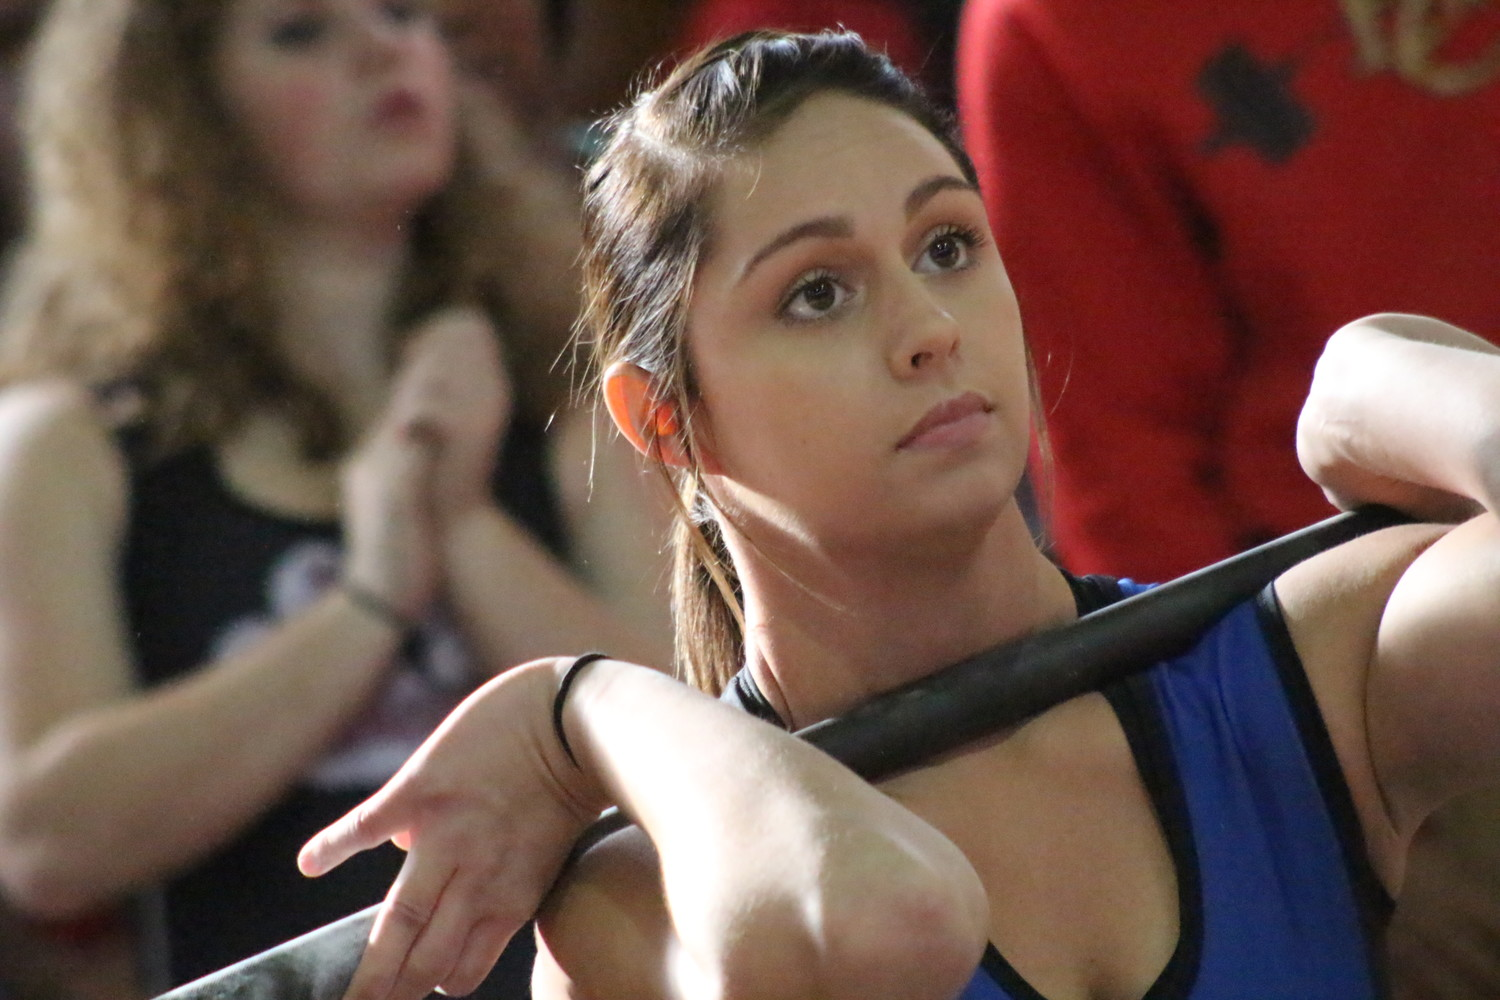 Clay High's Carli Mcrae settles in her clean and jerk en route to gold medal in 139 pound weight division.  Mcrae totaled 325 pounds with second a distant 245 pounds.